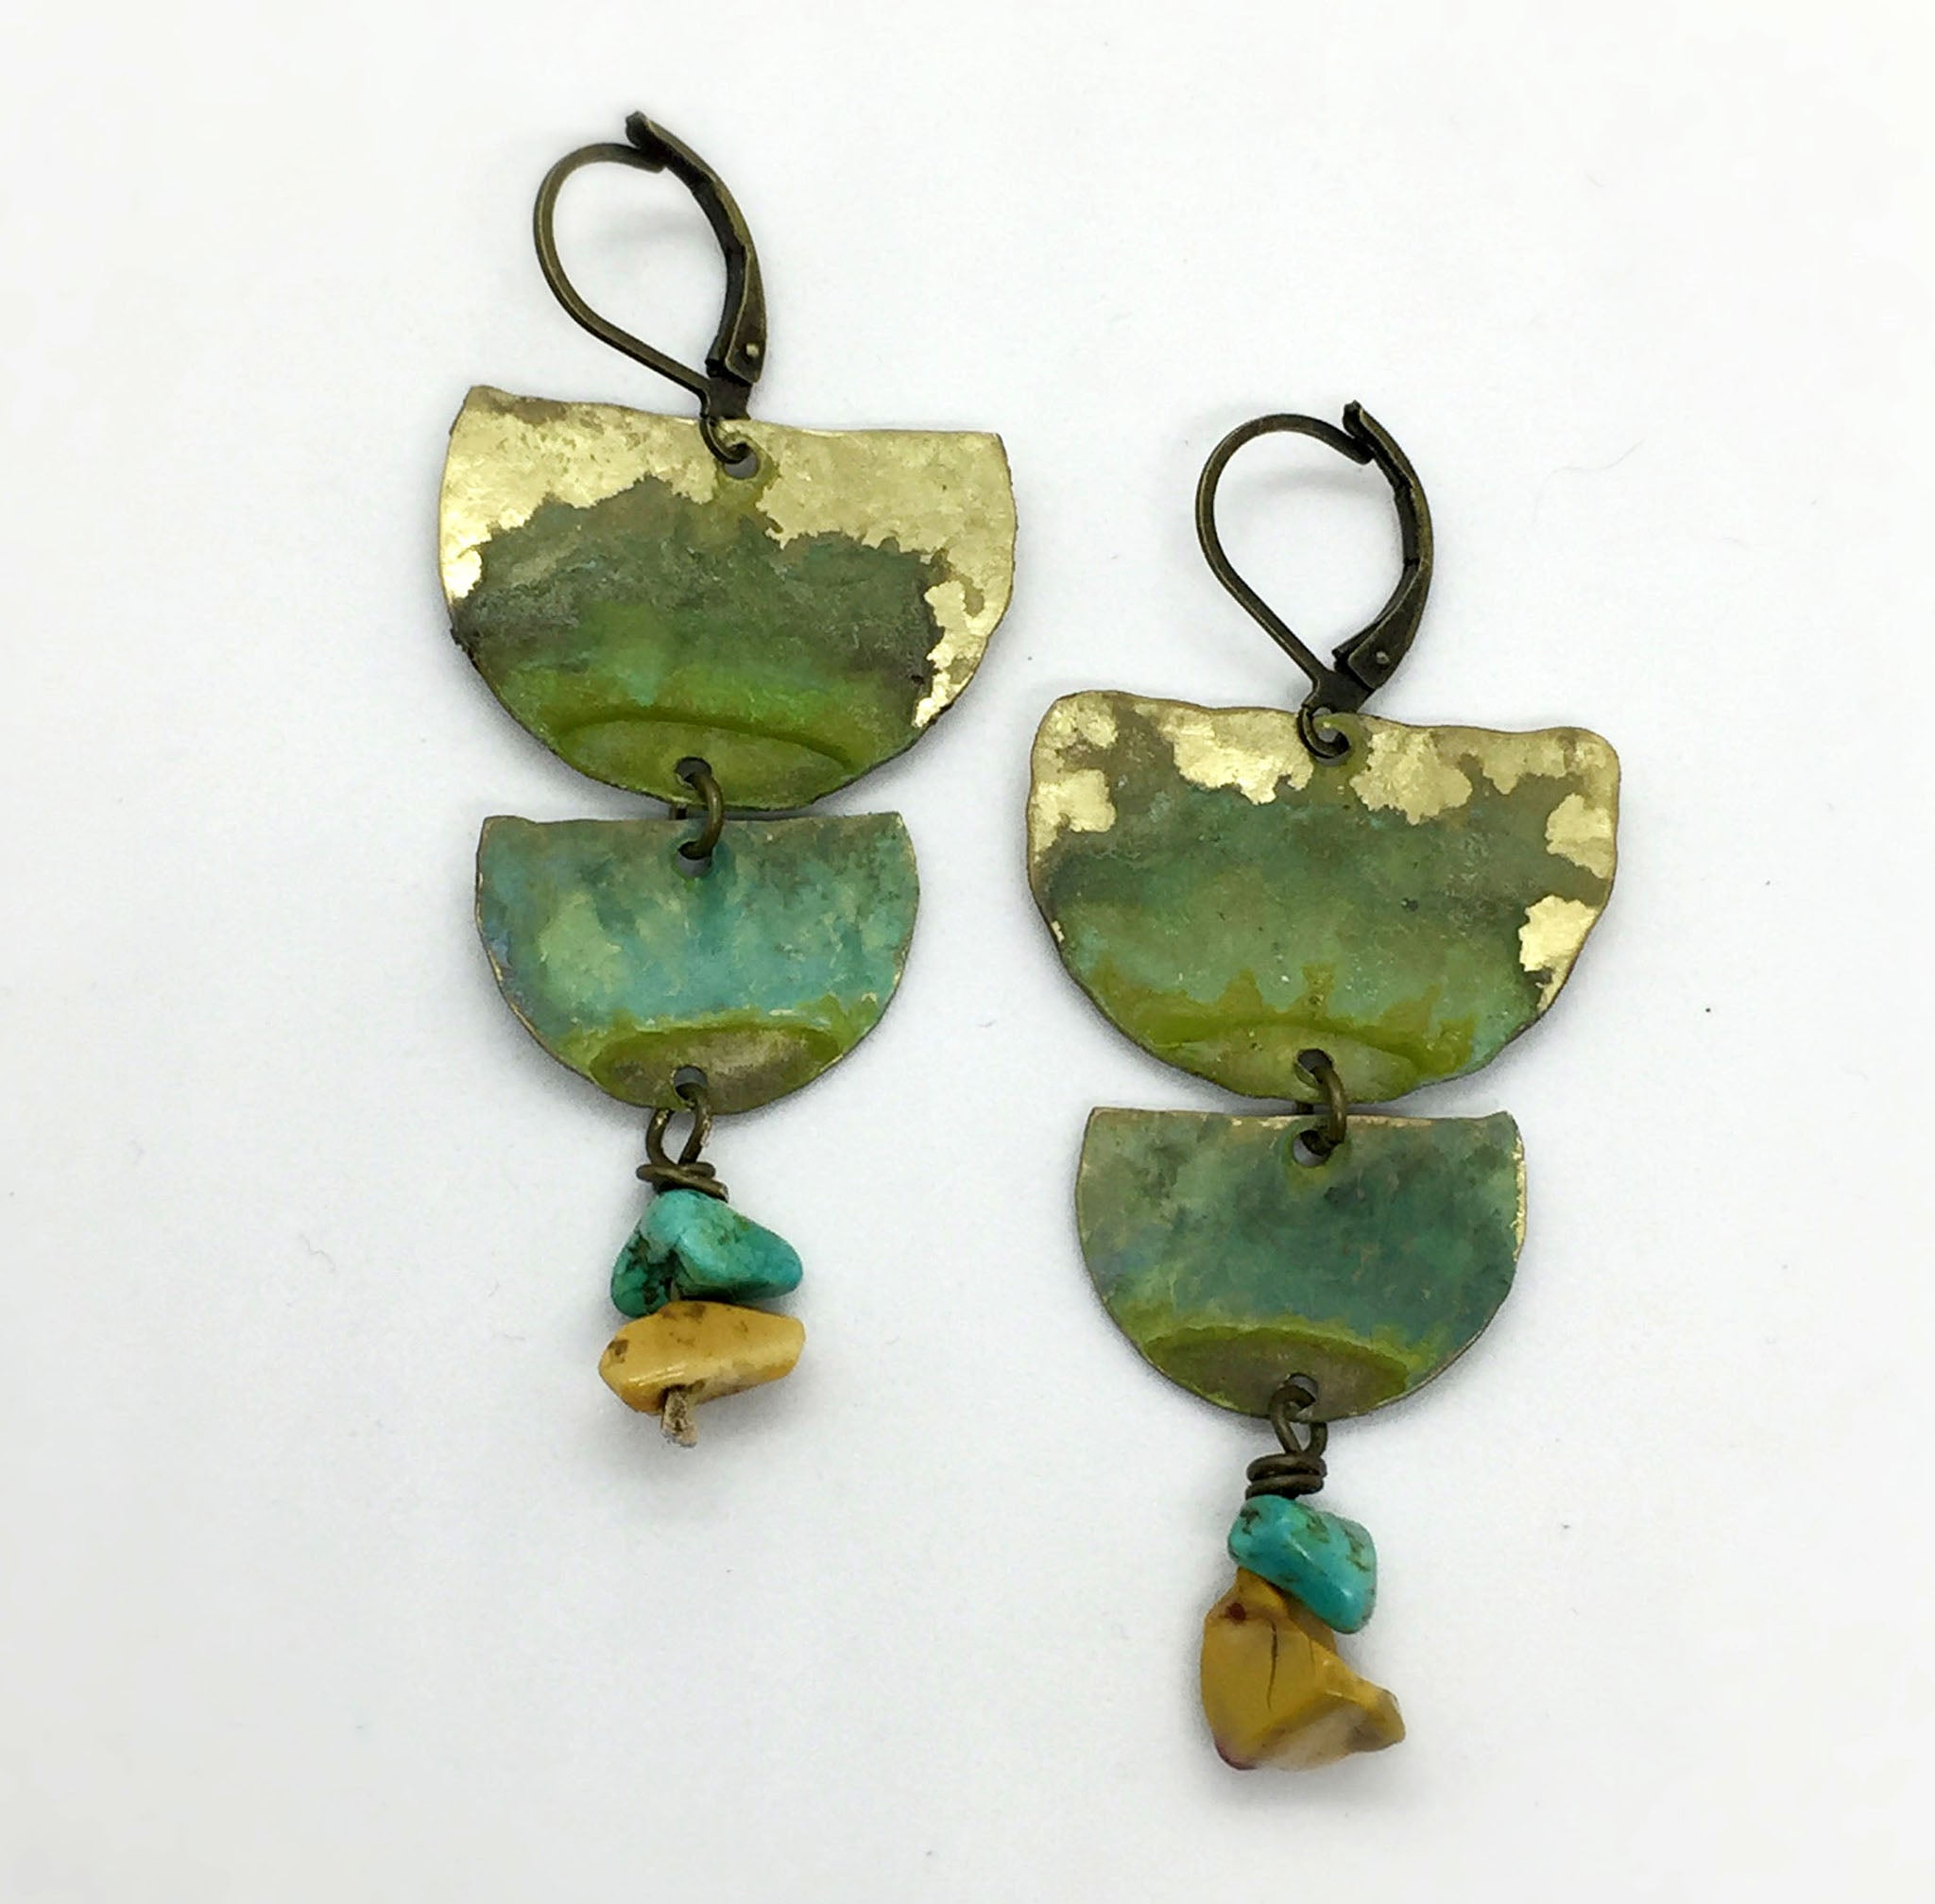 brass and mookaite verdigris patina earrings by Andie Kriedel